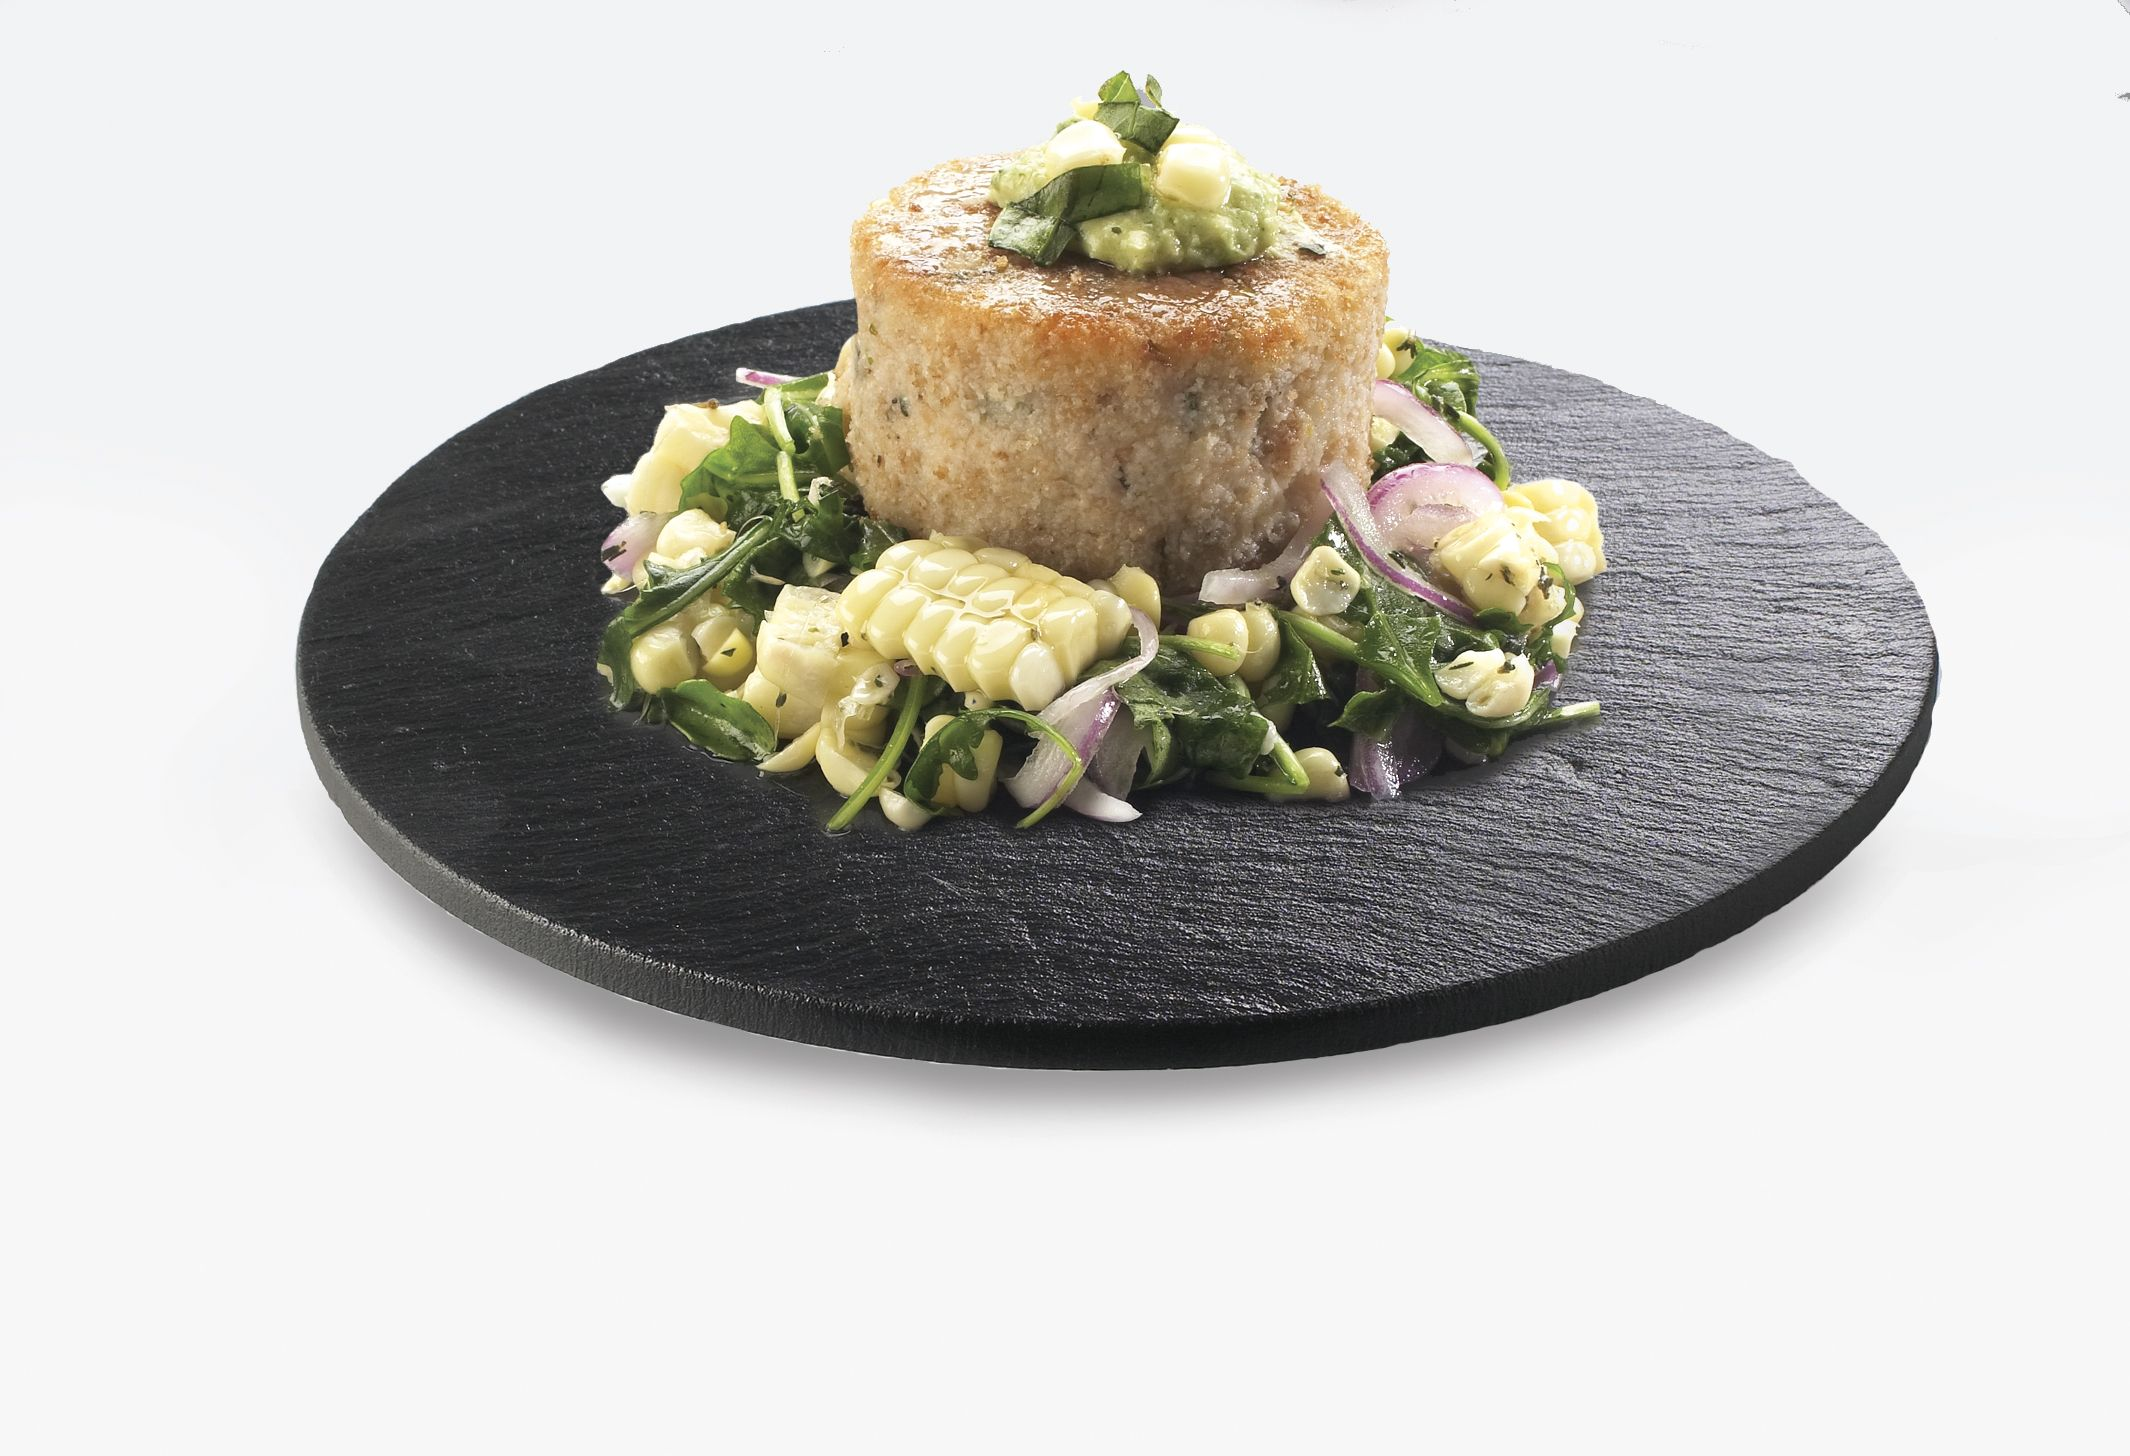 These round serving and display stones combines edged textures with sturdy design makes these serving stones the essential product to serve your food presentations.